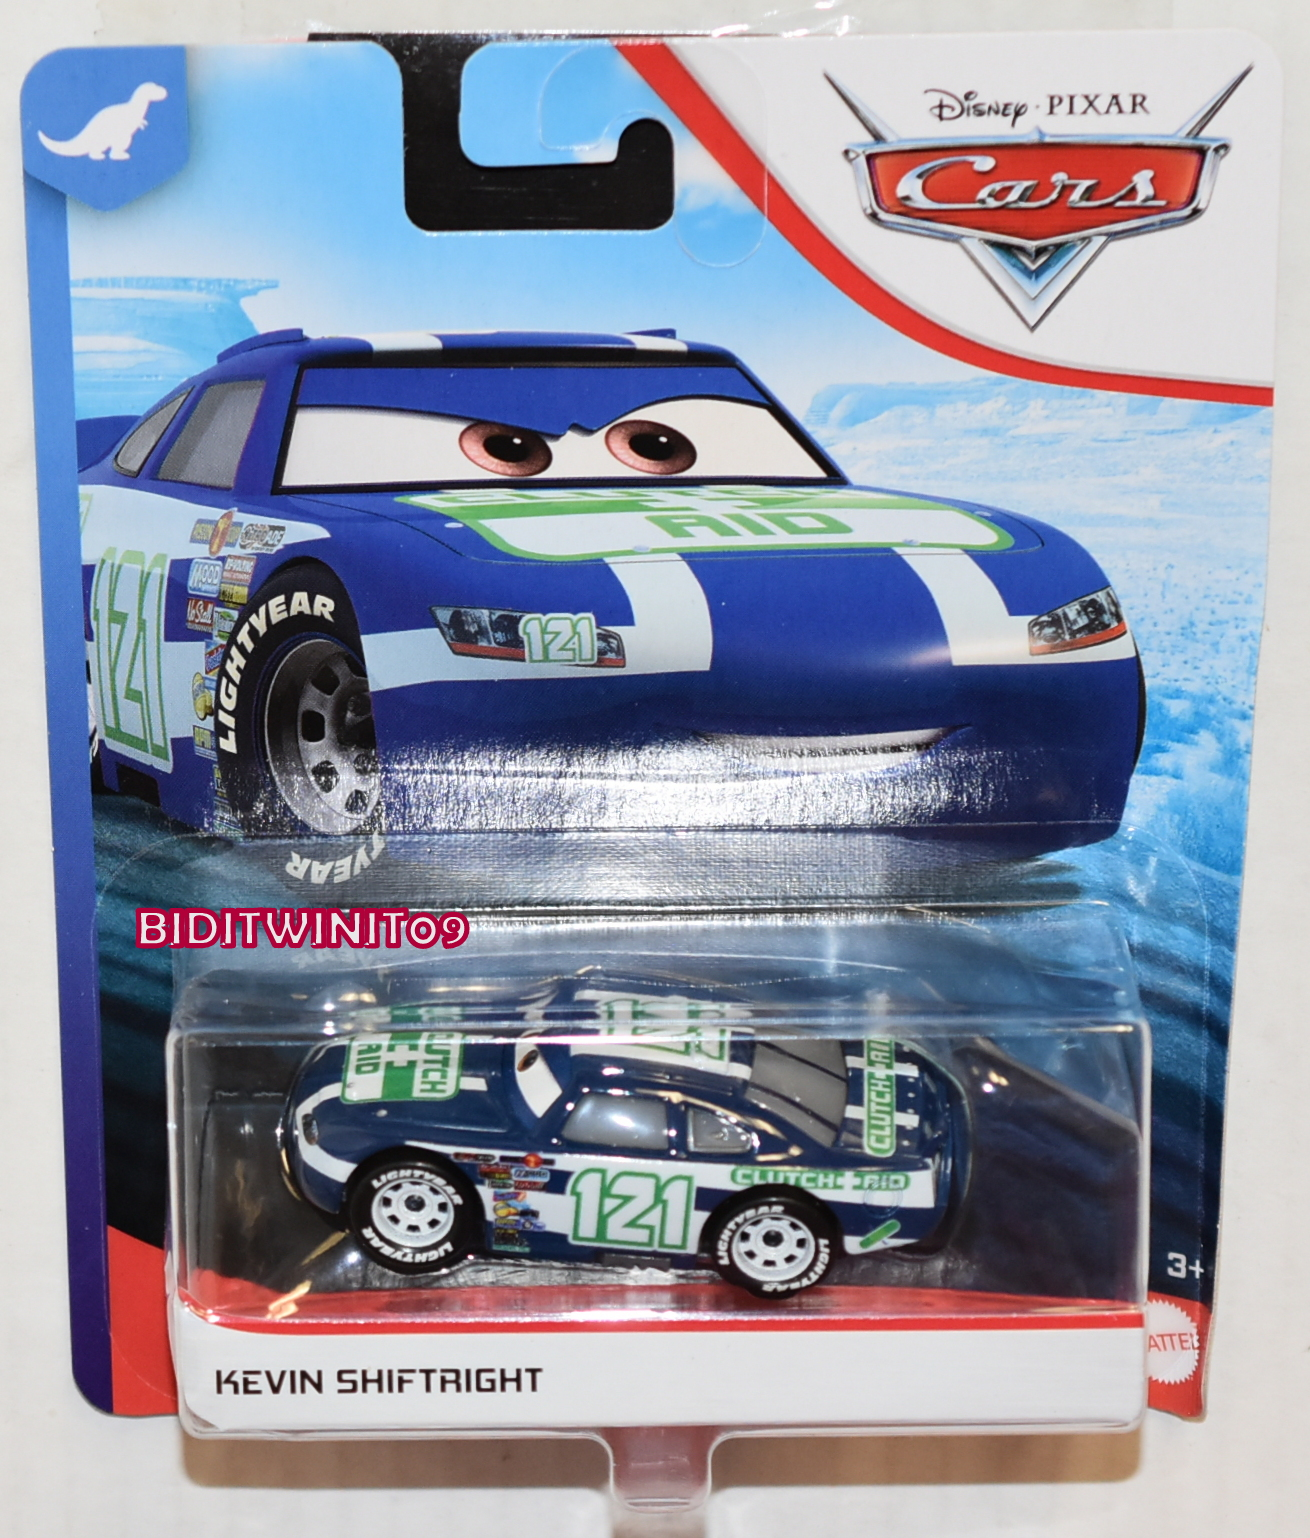 DISNEY PIXAR CARS 2020 KEVIN SHIFTRIGHT CASE F E+